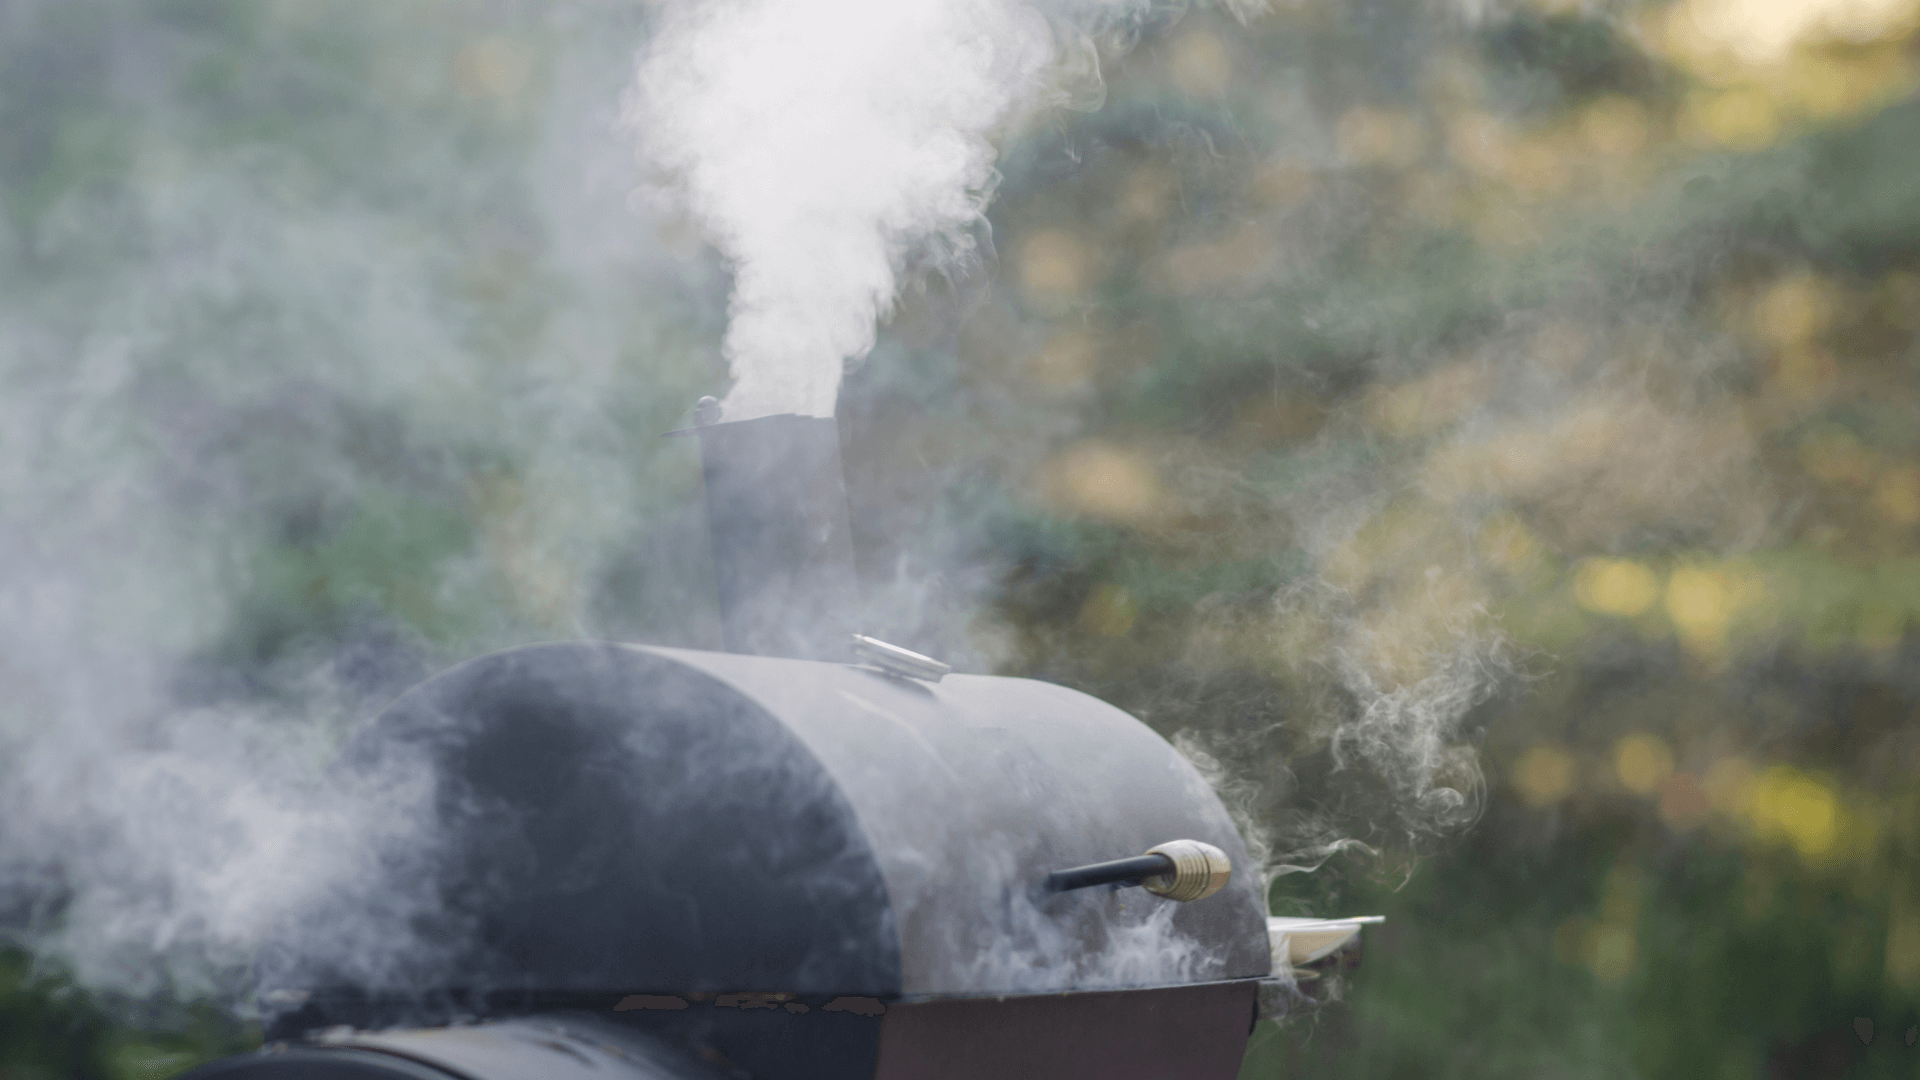 A smoker is in full use with smoke coming out the top and filling most of the image. There are green trees in the background.